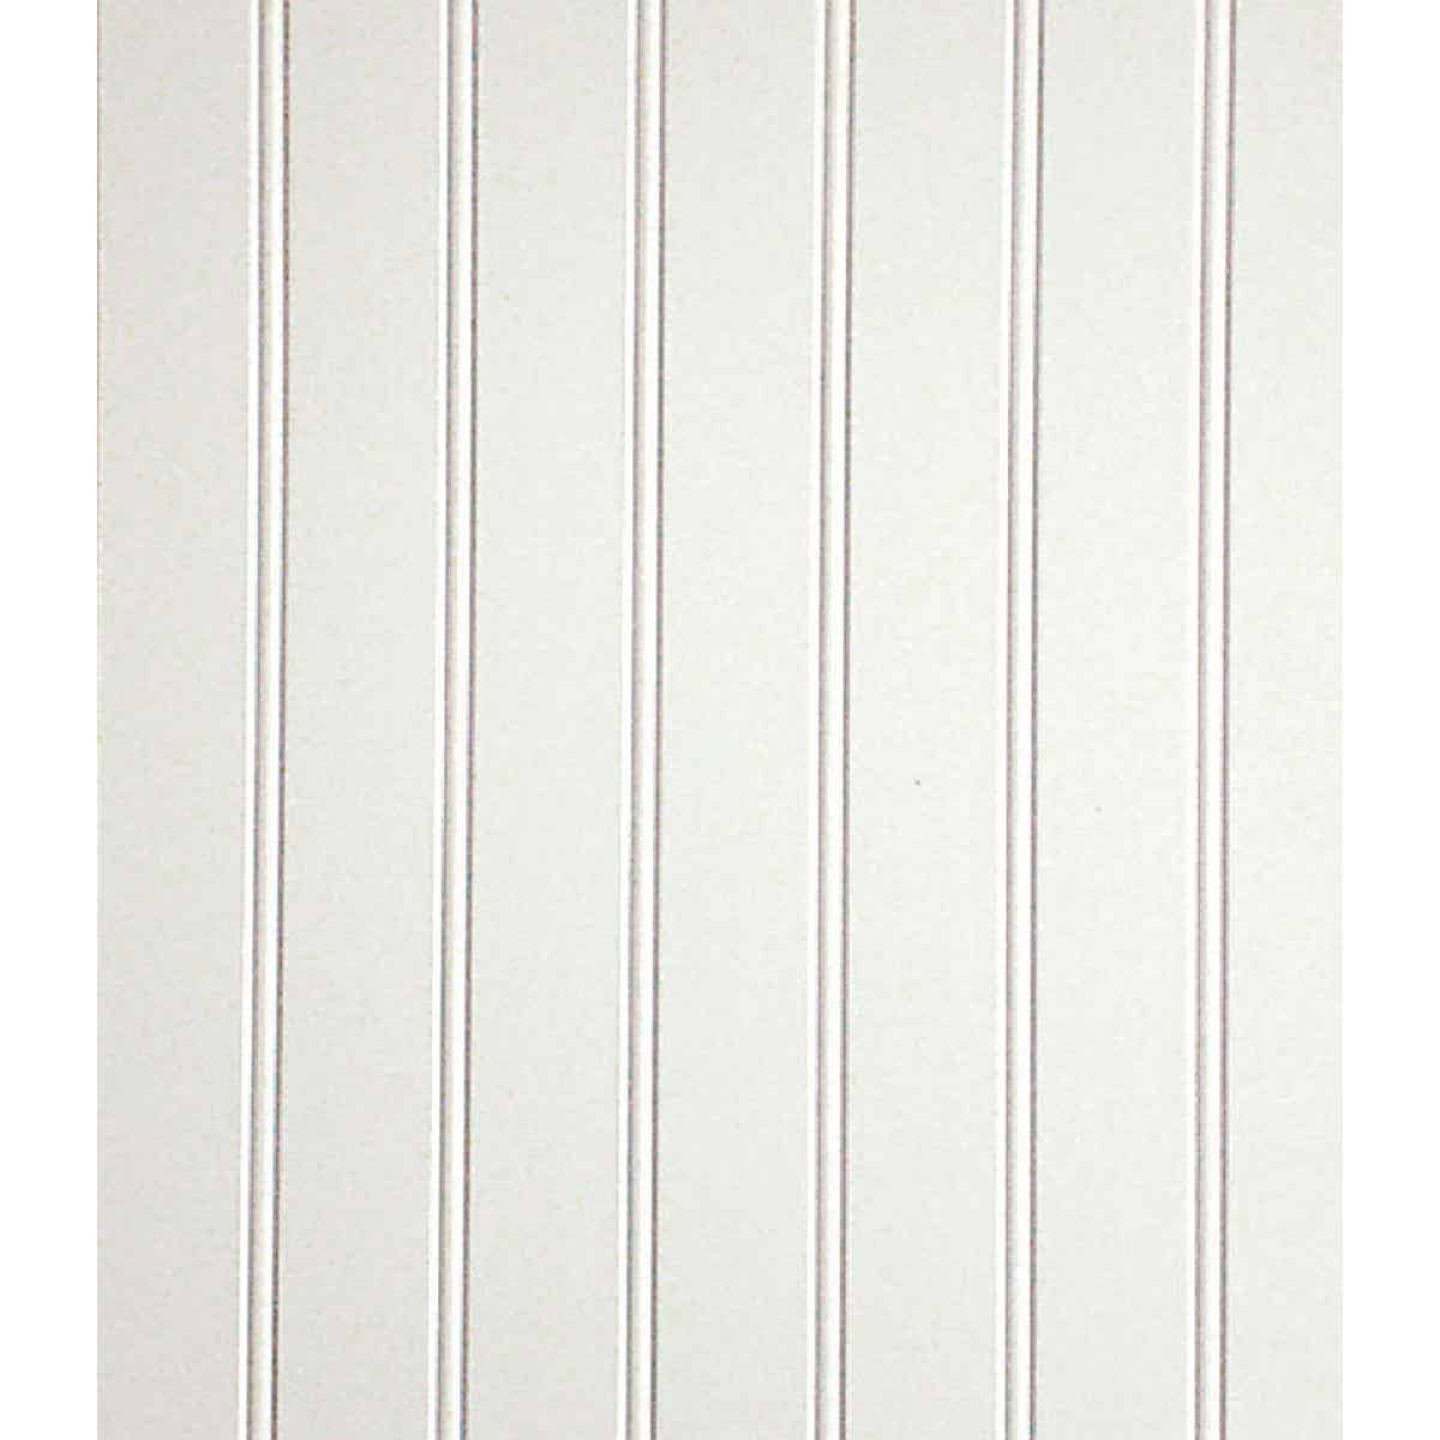 DPI 4 Ft. x 8 Ft. x 3/16 In. Paintable White Beaded Wall Paneling Image 3